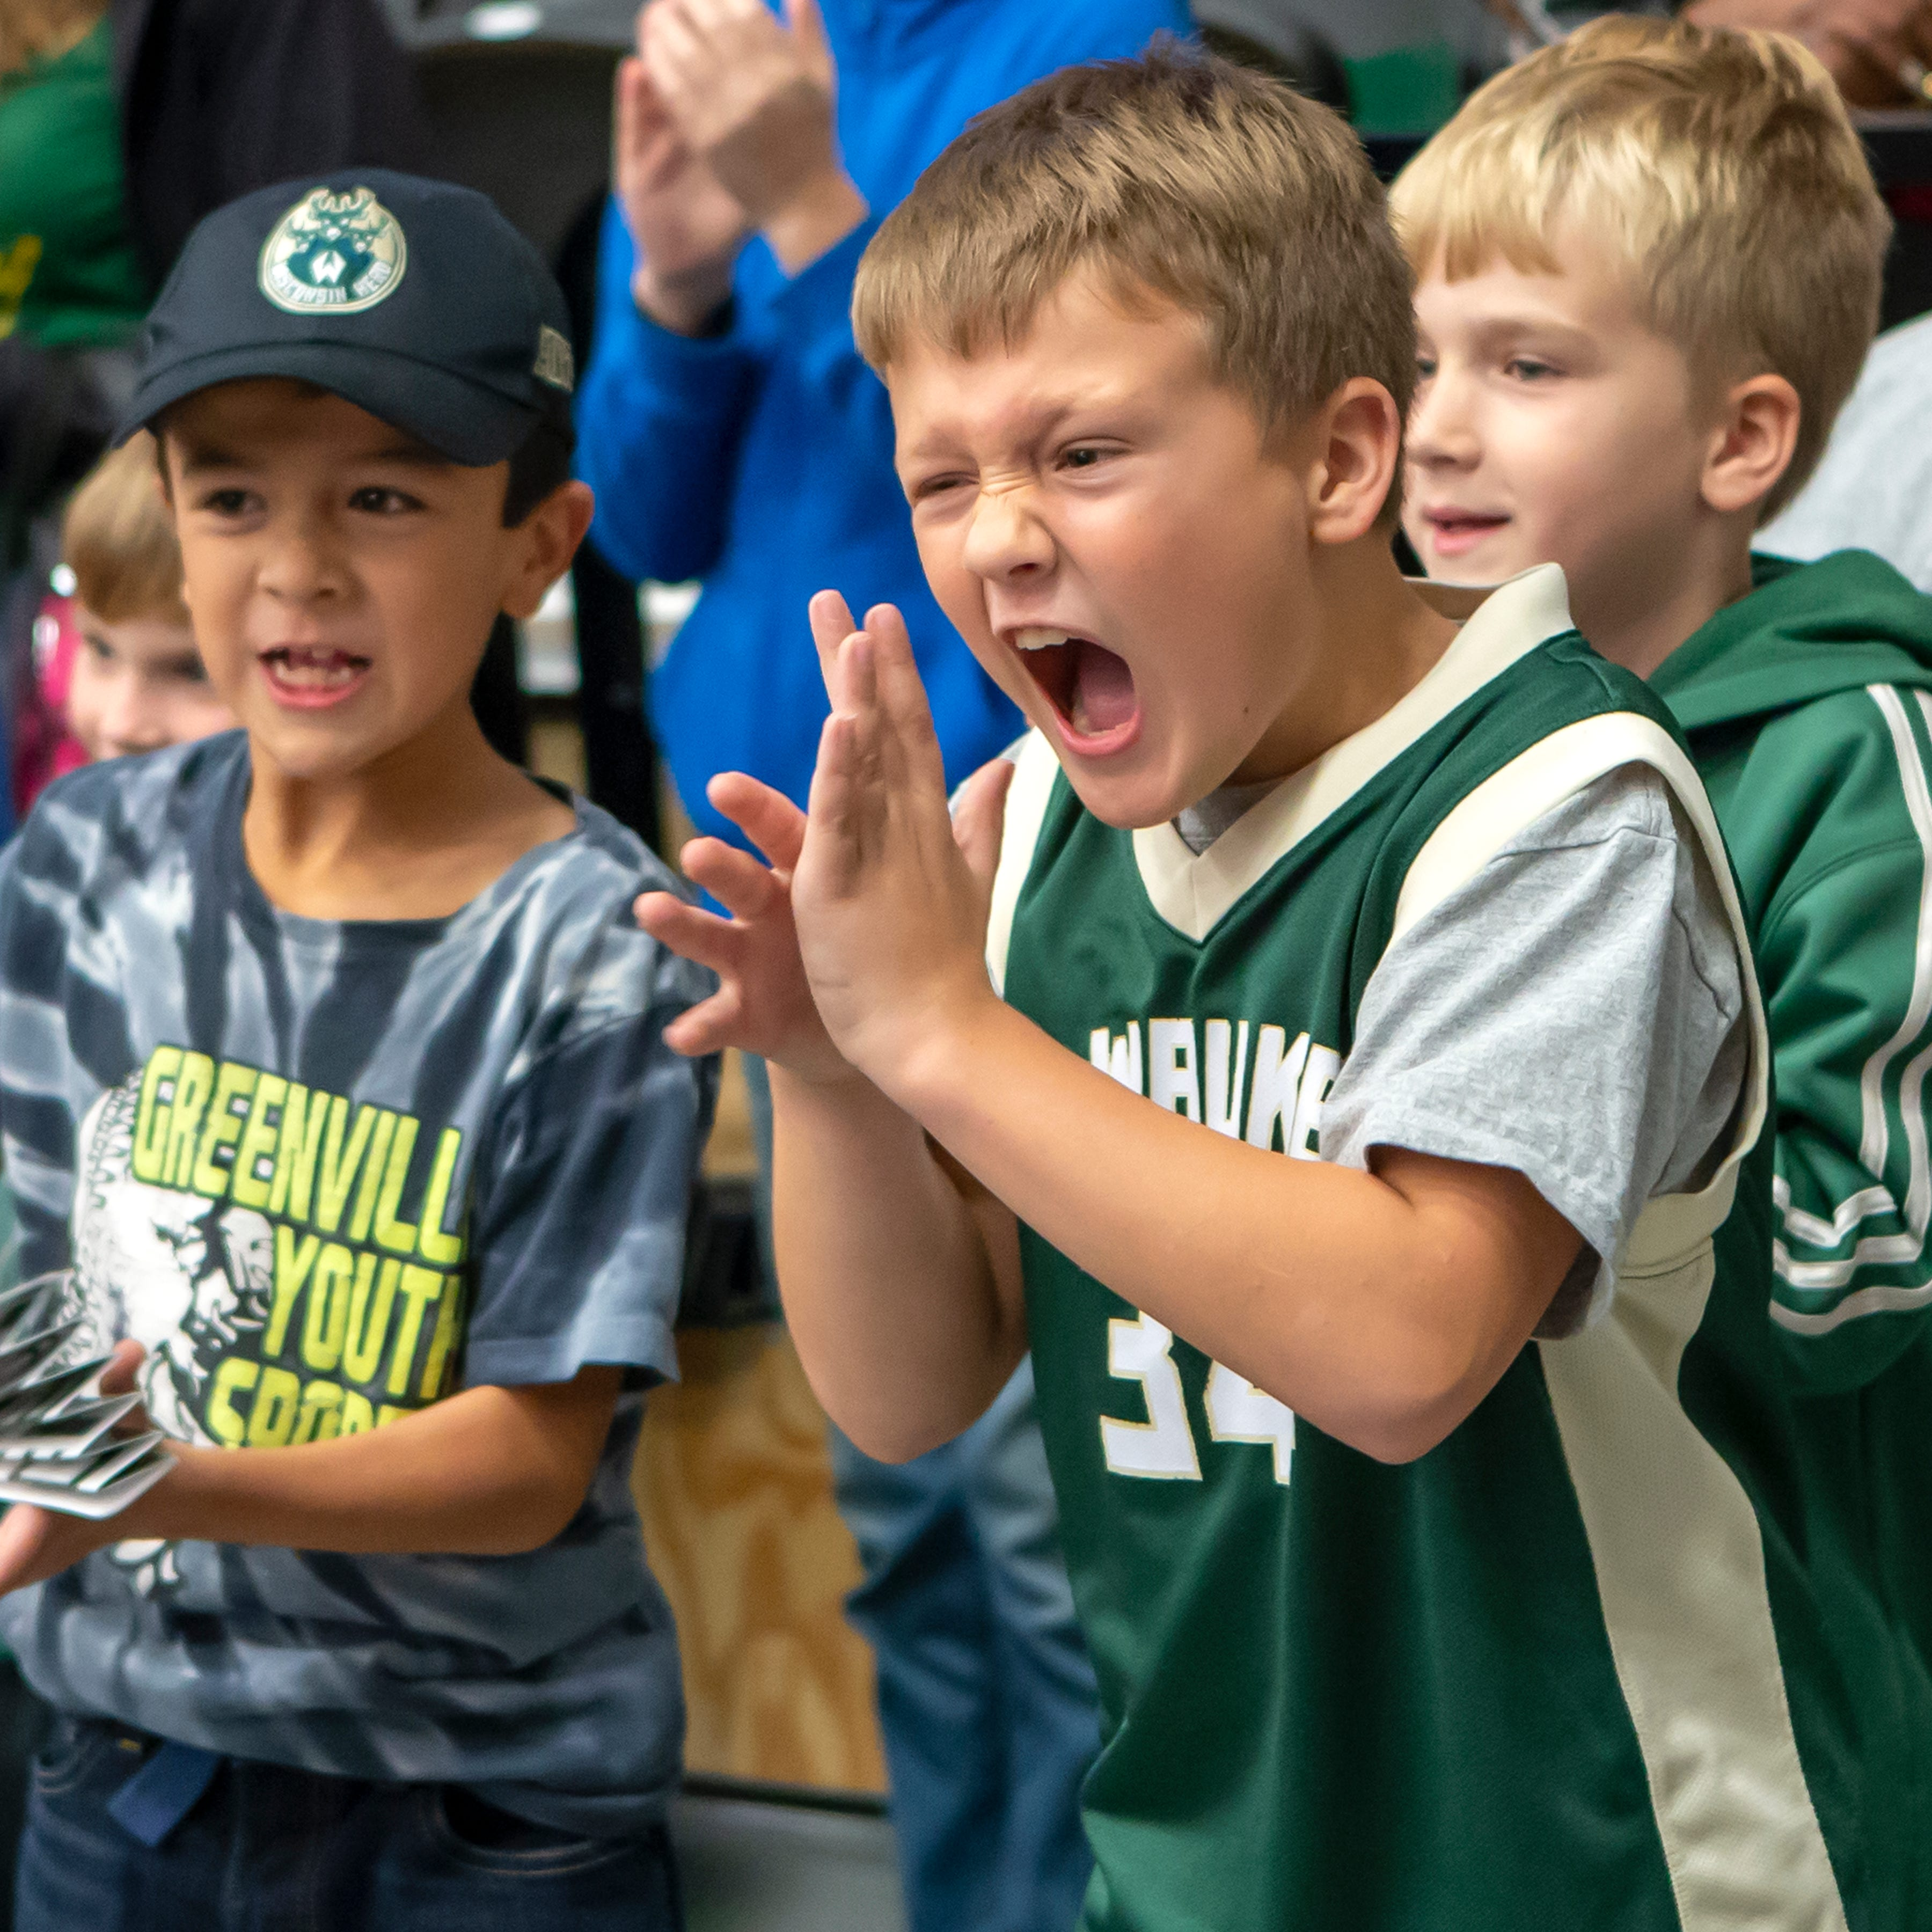 Wisconsin Herd celebrates strong fan base despite losing season